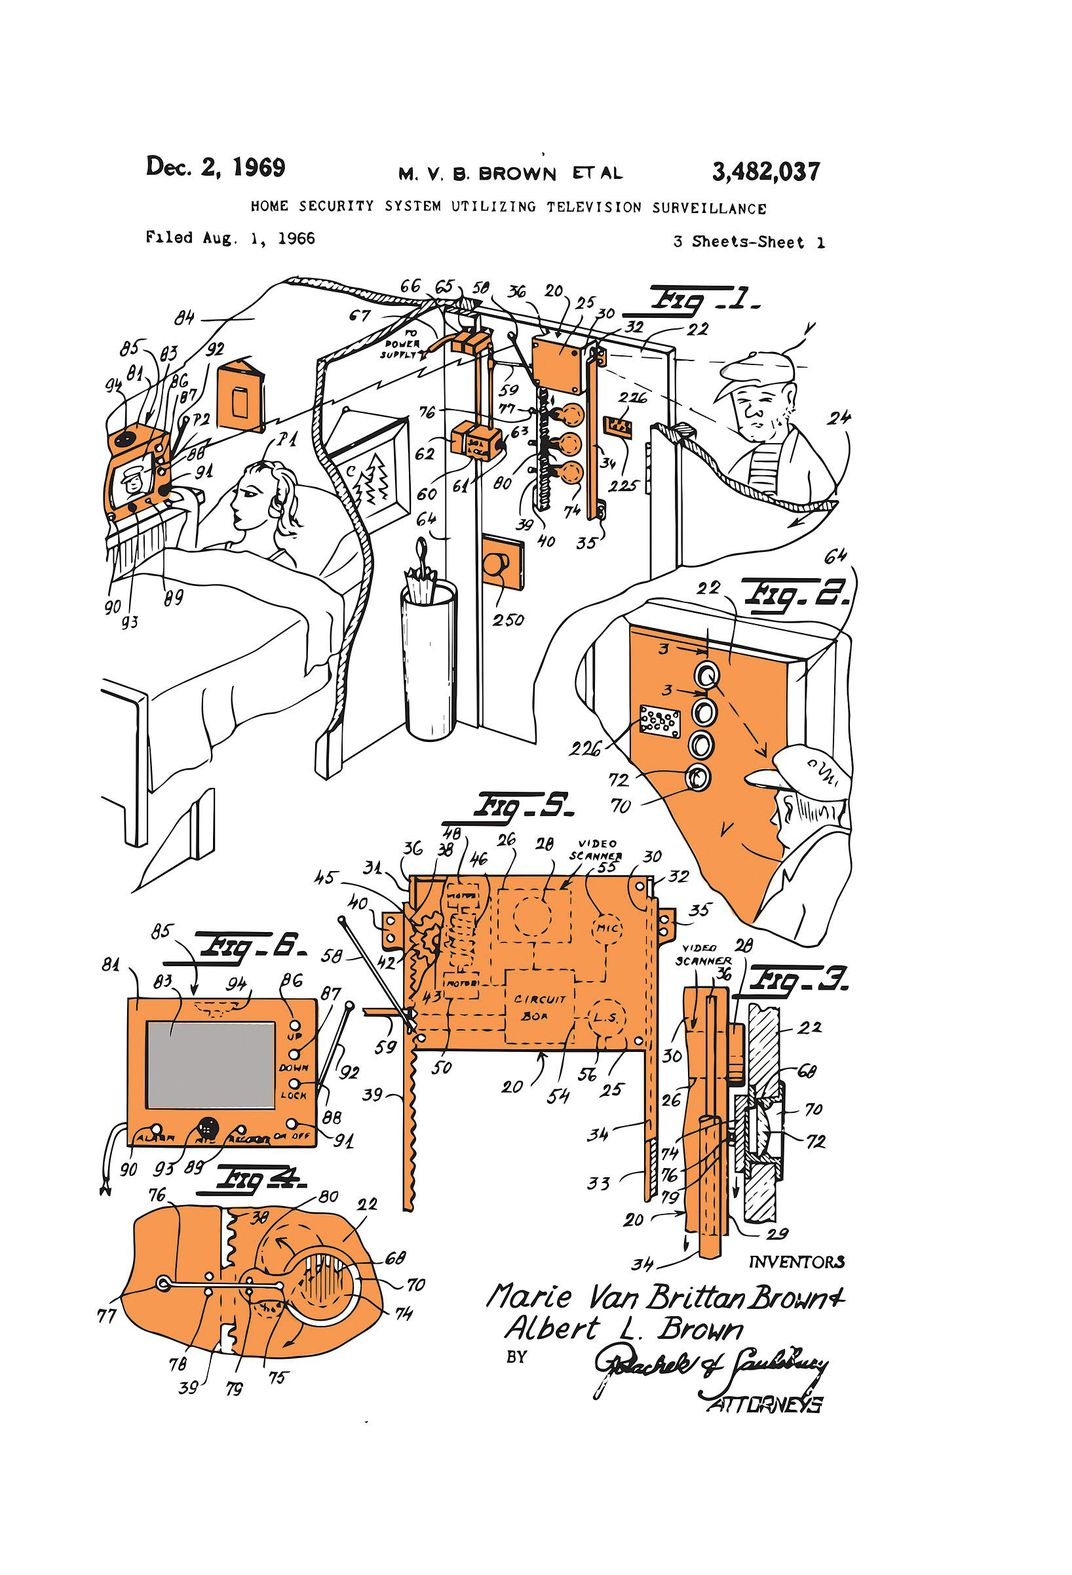 Patent application for bedside door security camera, sketched in black, white, and orange